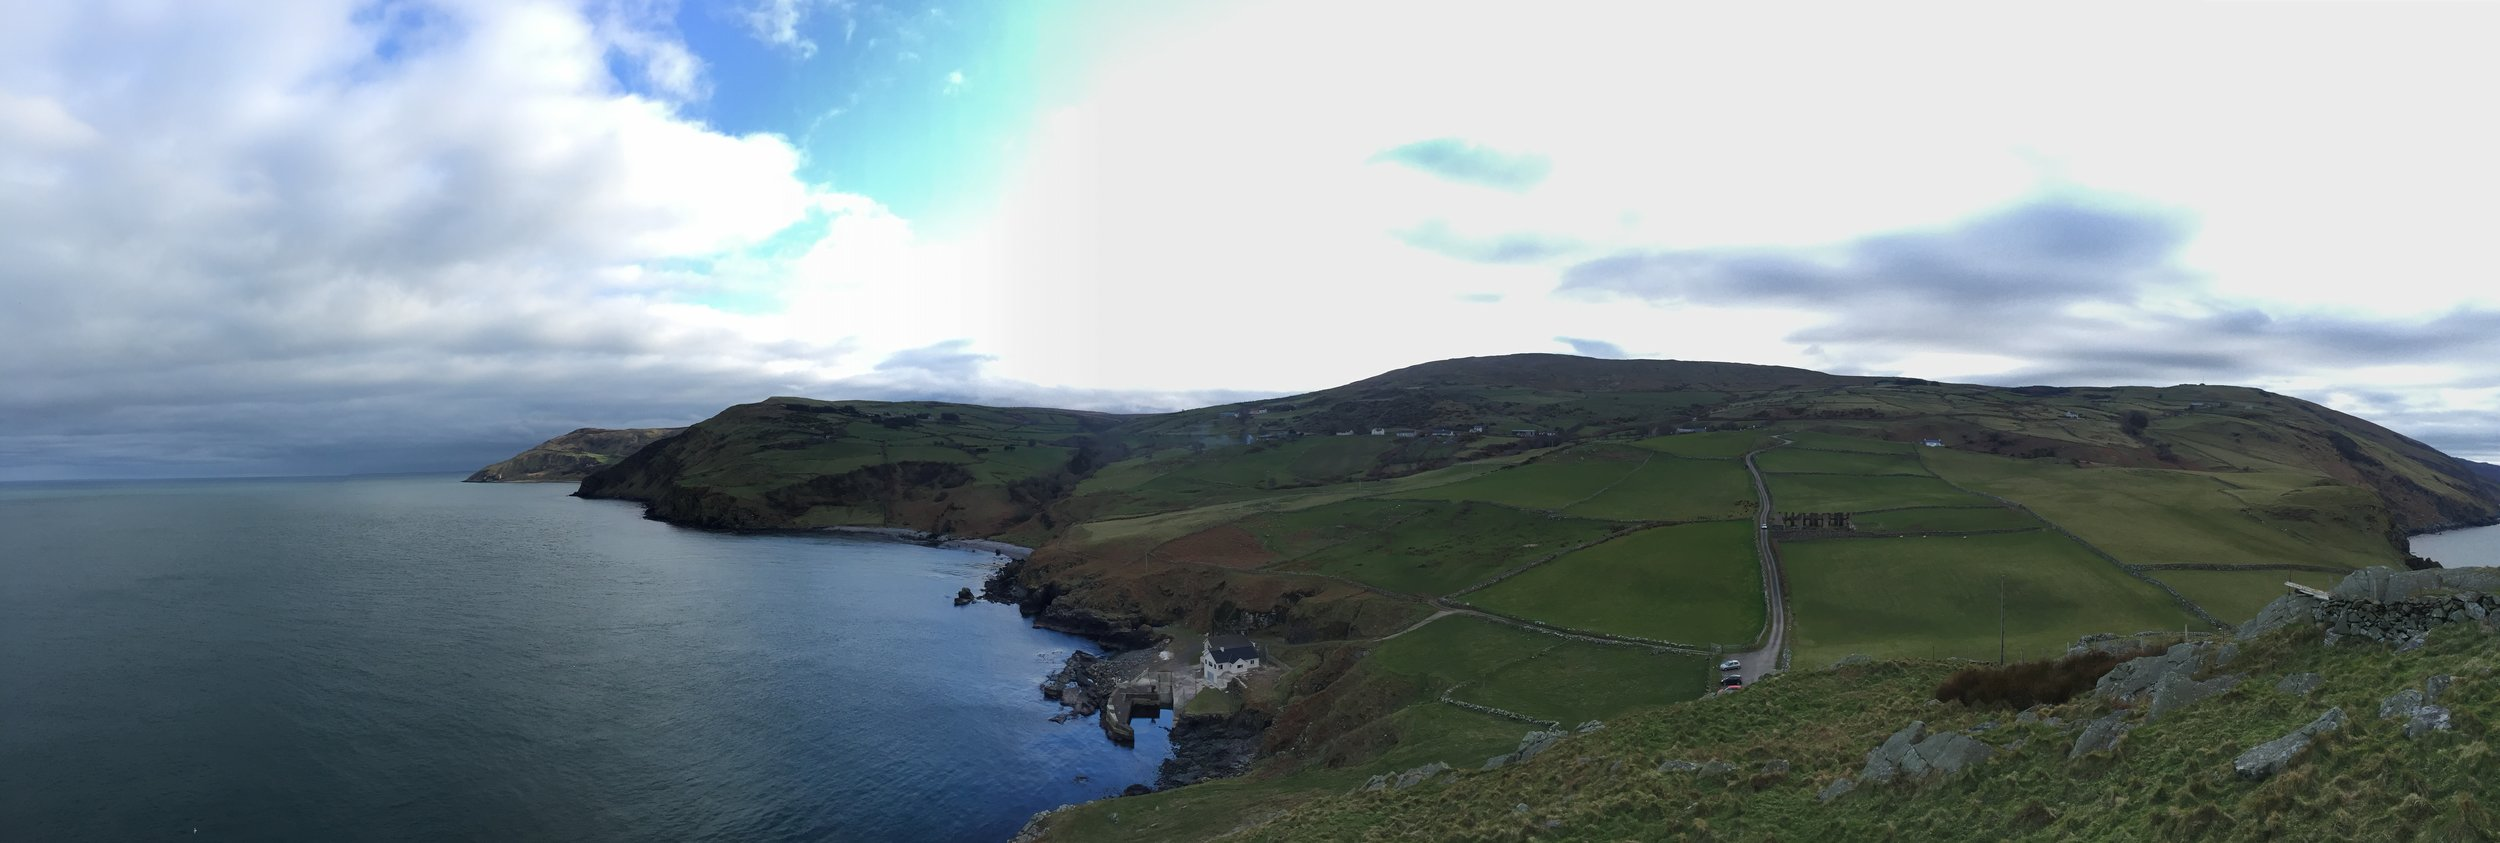 panorama_land_torr_head_ni_explorer_niexplorer_northern_ireland_blog.jpg